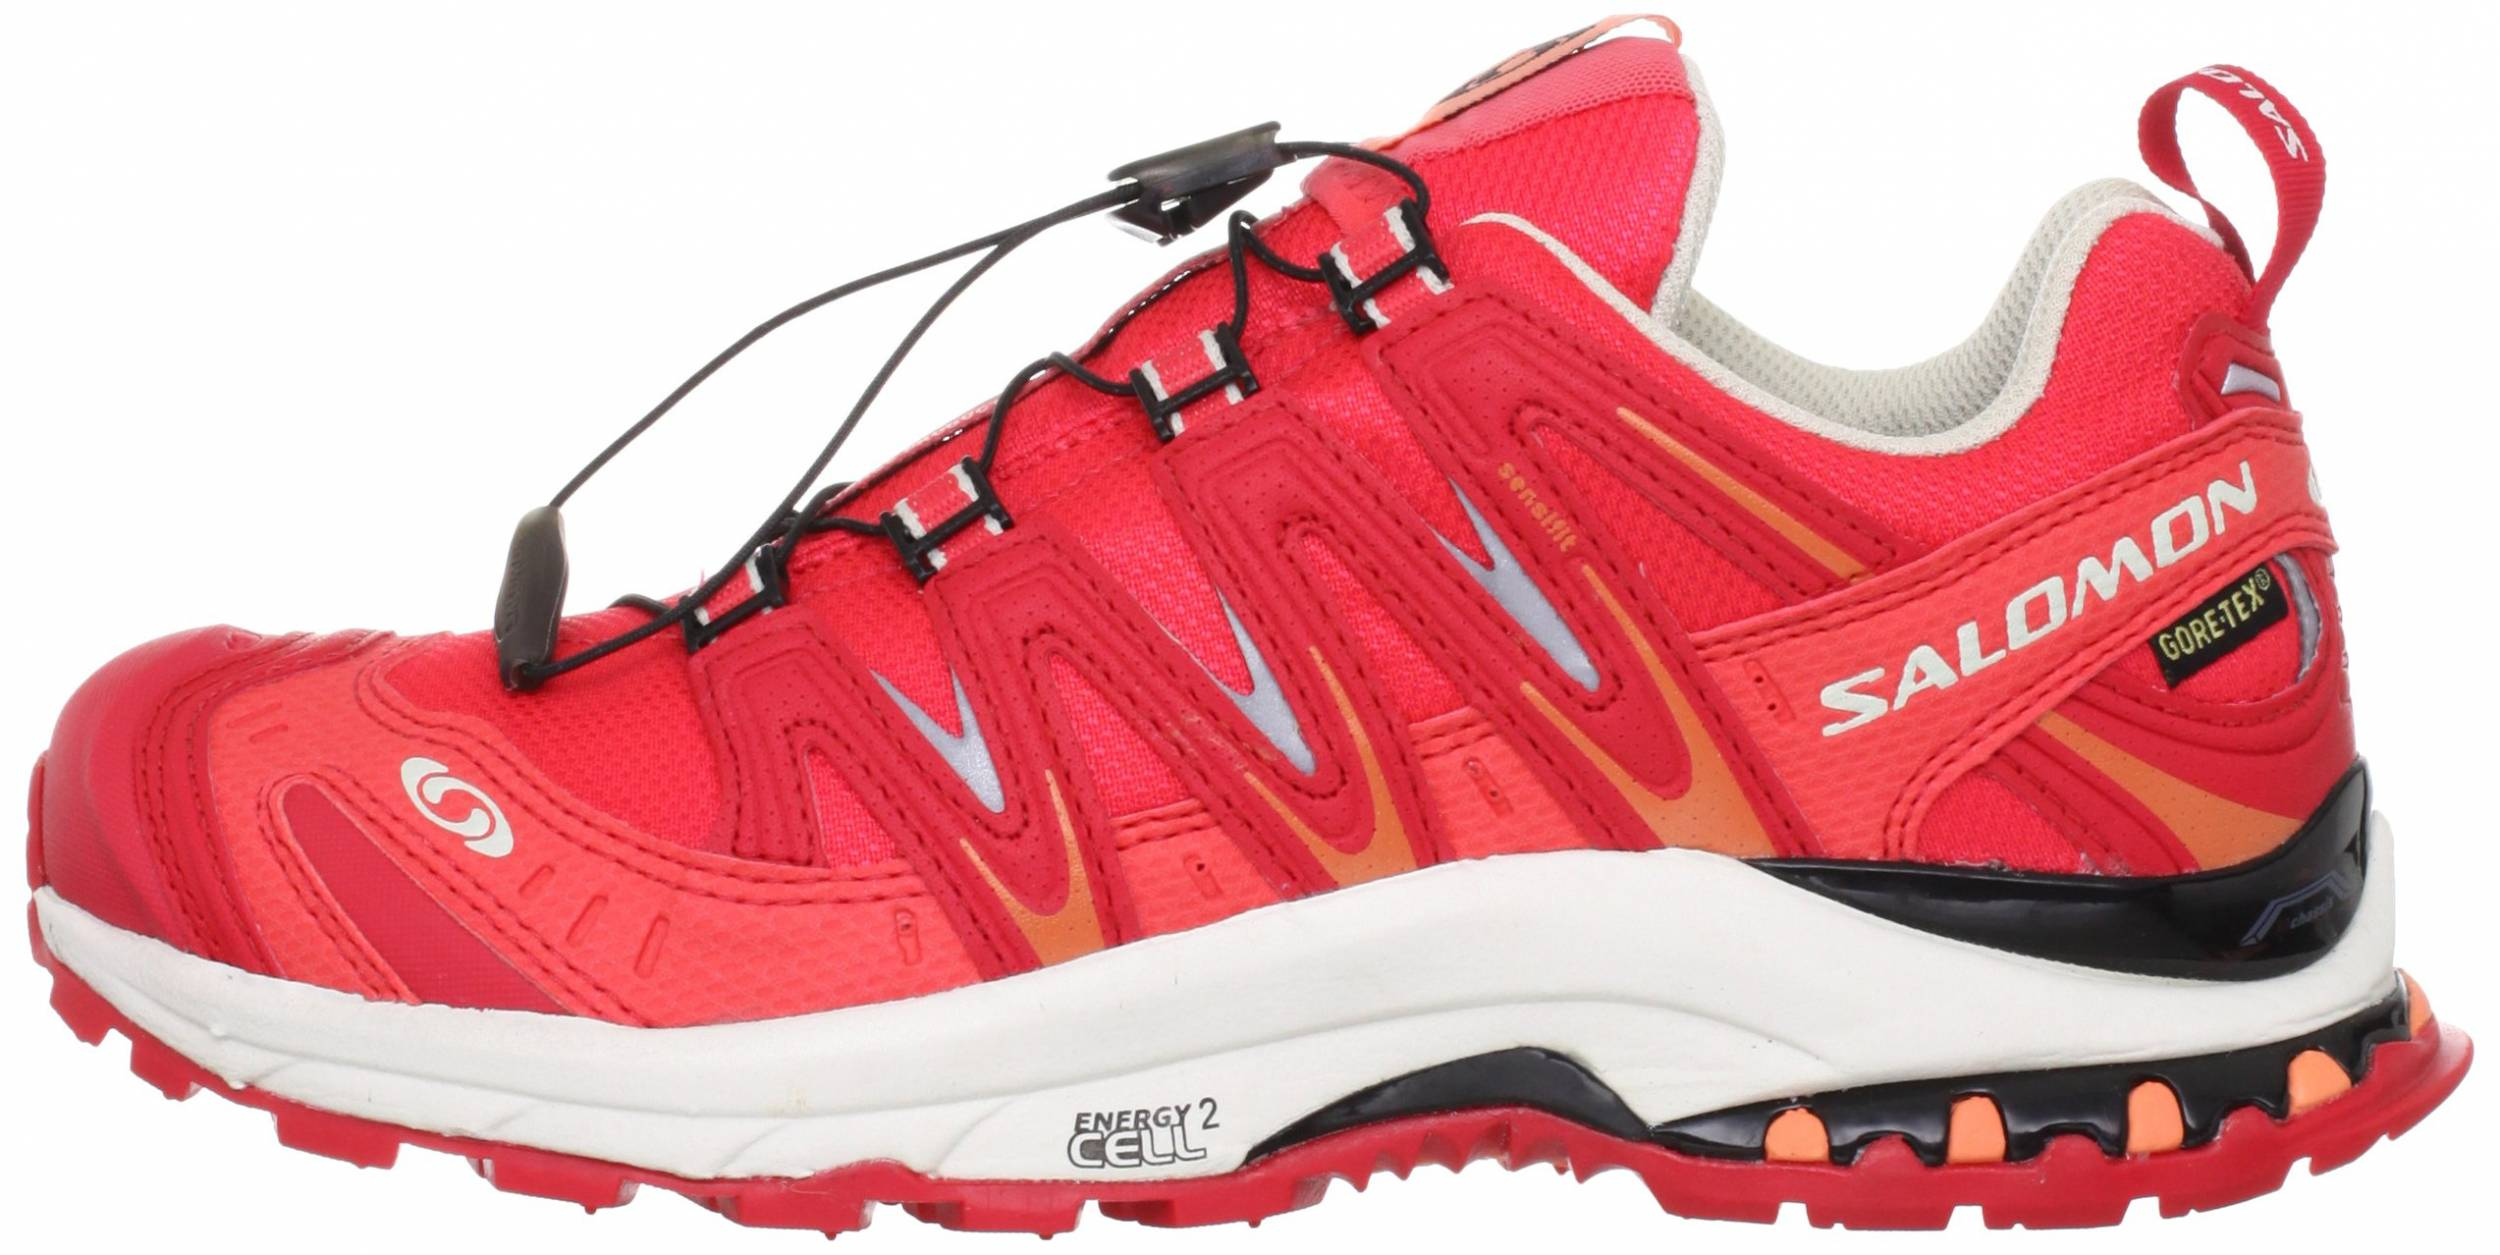 8 Reasons To Not To Buy Salomon Xa Pro 3d Ultra 2 Gtx Mar 2021 Runrepeat